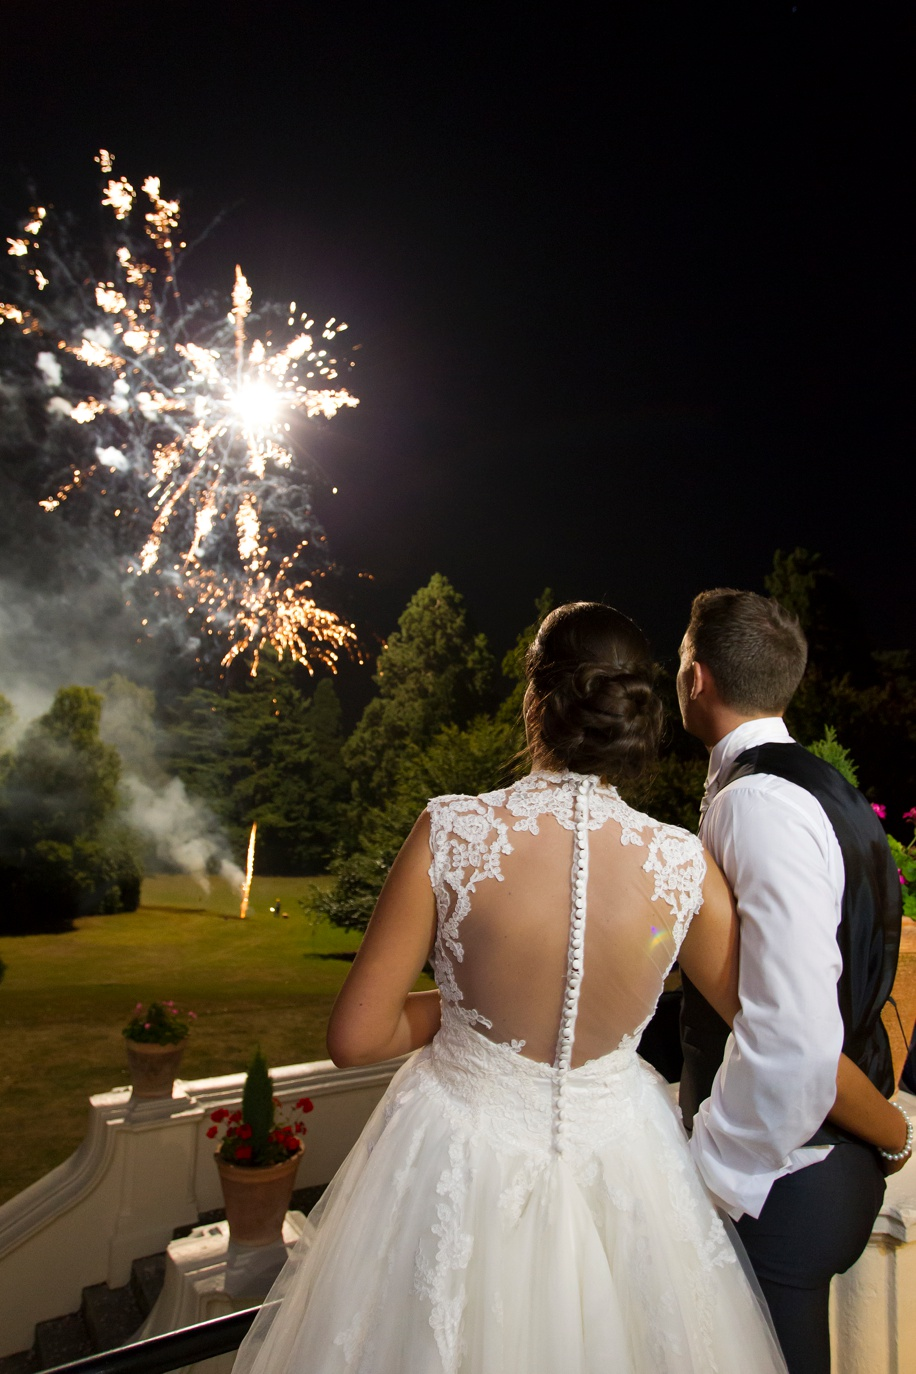 Fireworks display on a wedding day at Northcote House